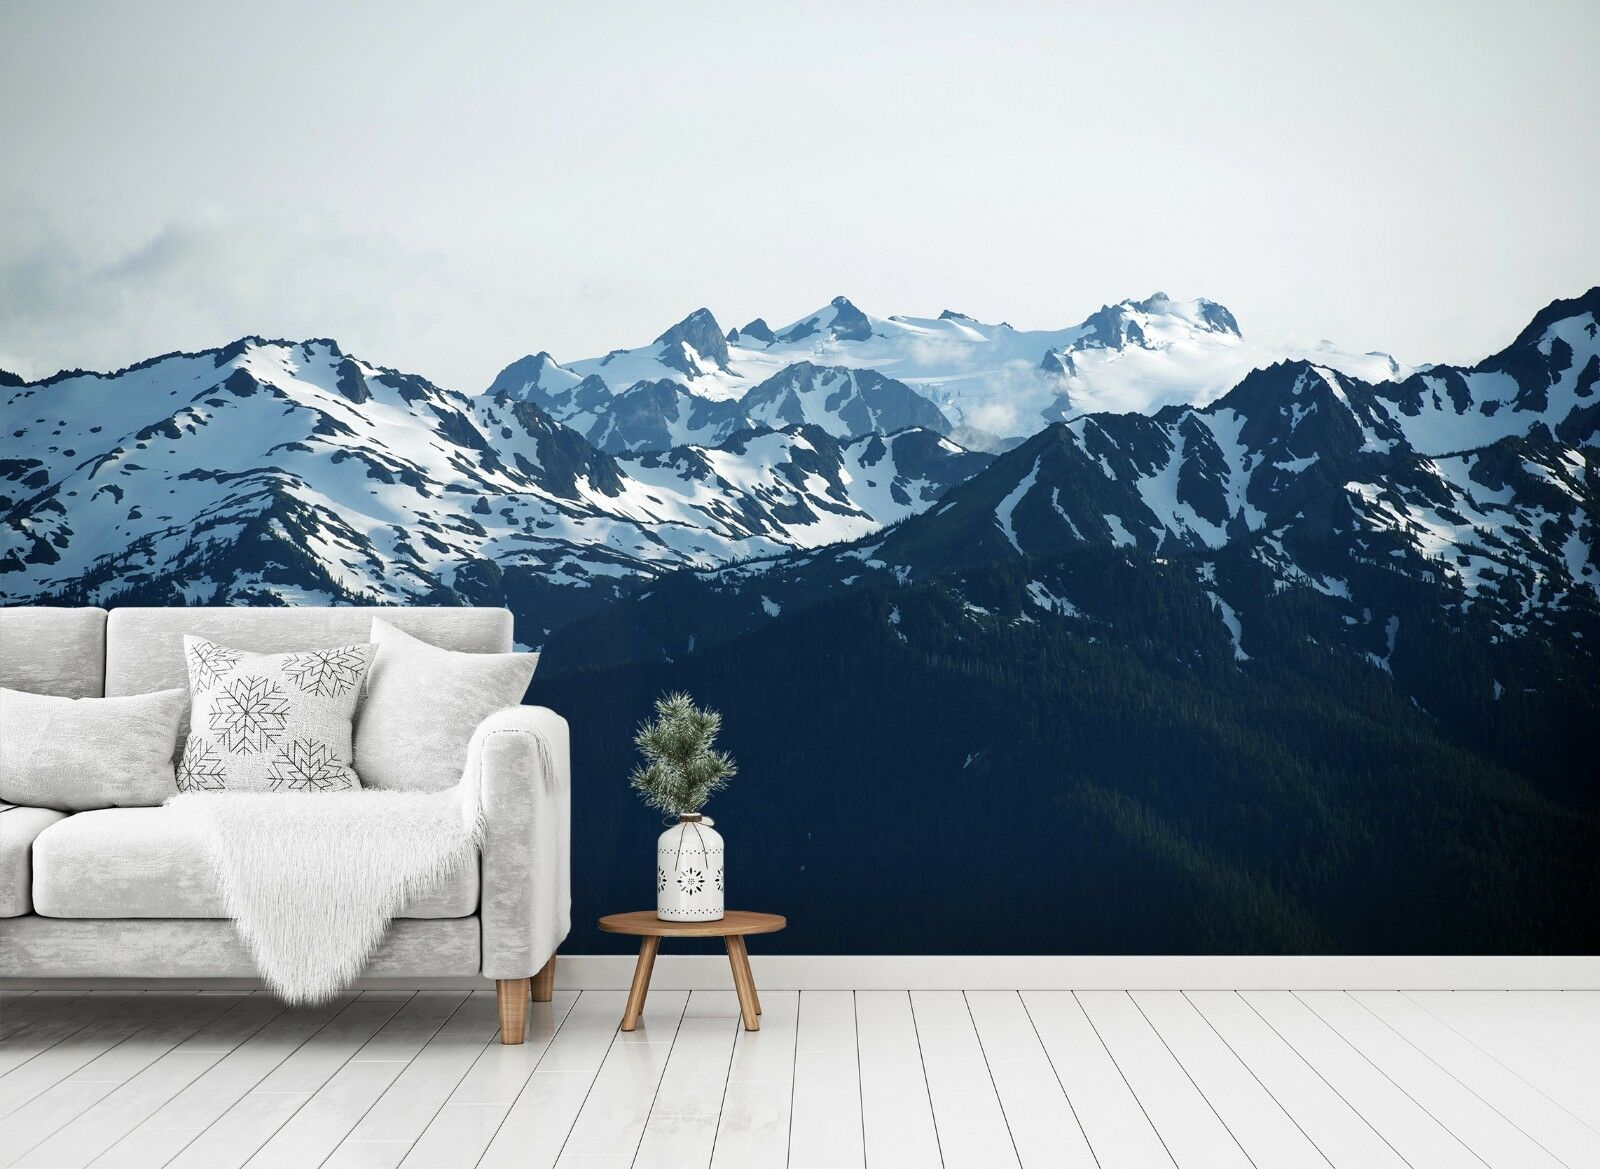 3D Snow Melting Mountain 3 Wall Paper Exclusive MXY Wallpaper Mural Decal Indoor